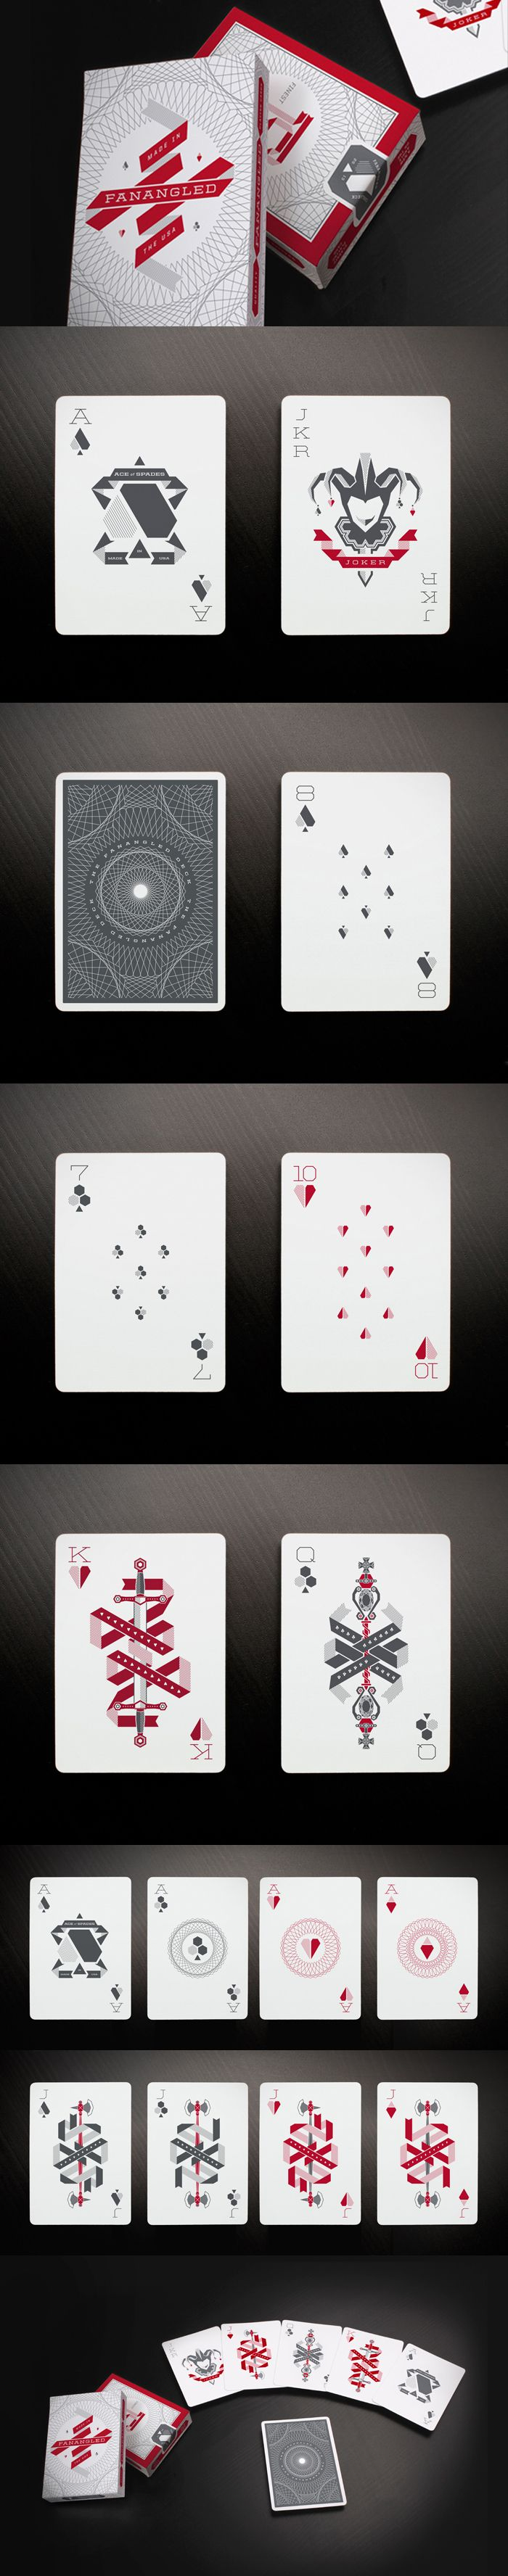 Fanangled Playing Cards